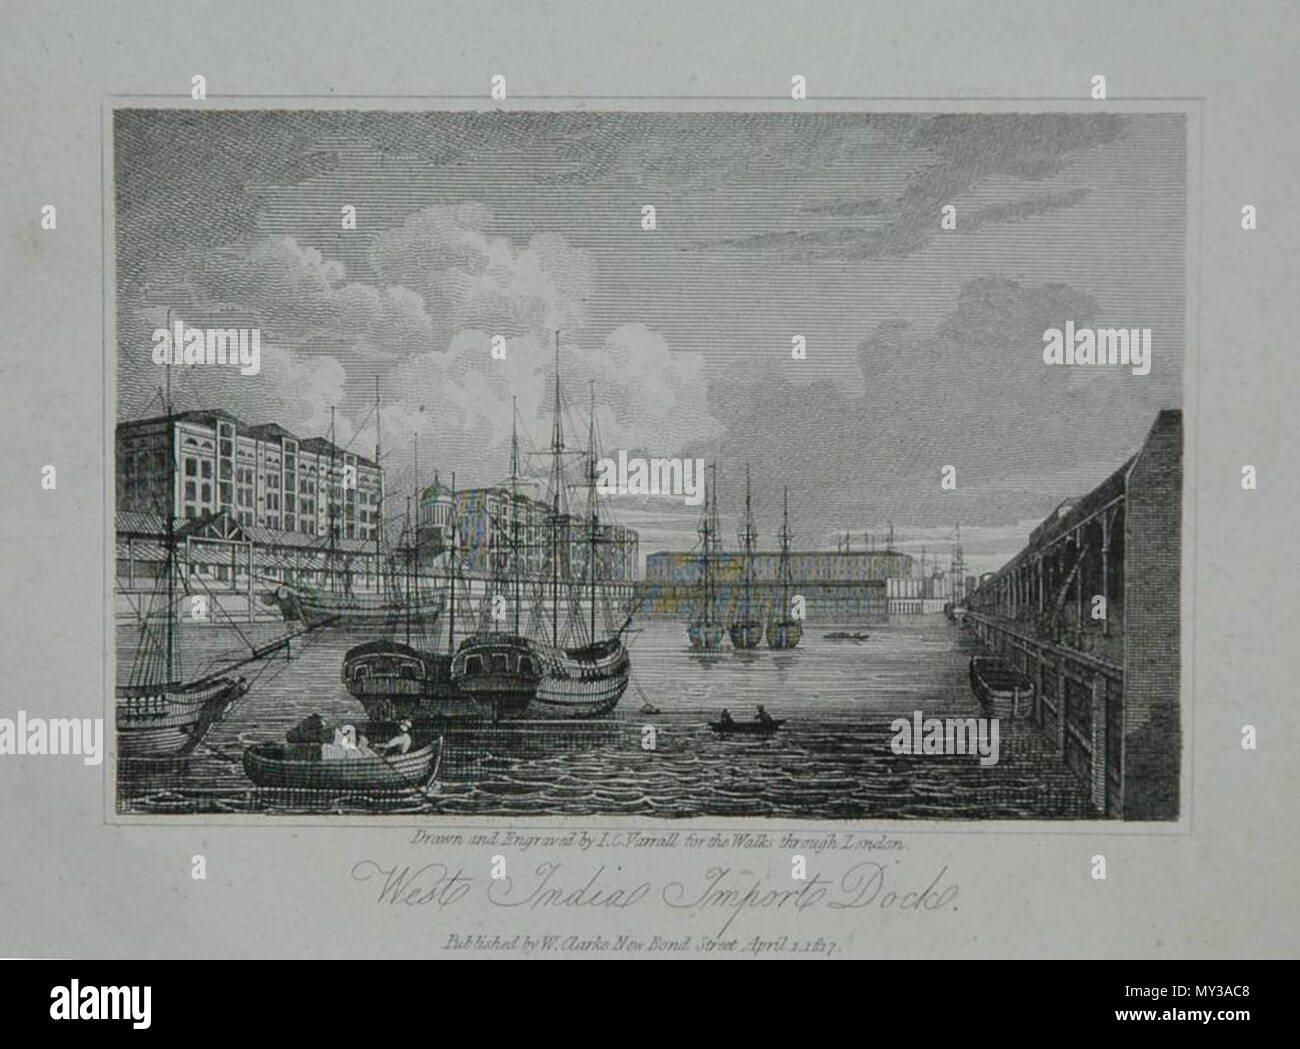 Varrall Stock Photos & Varrall Stock Images - Alamy